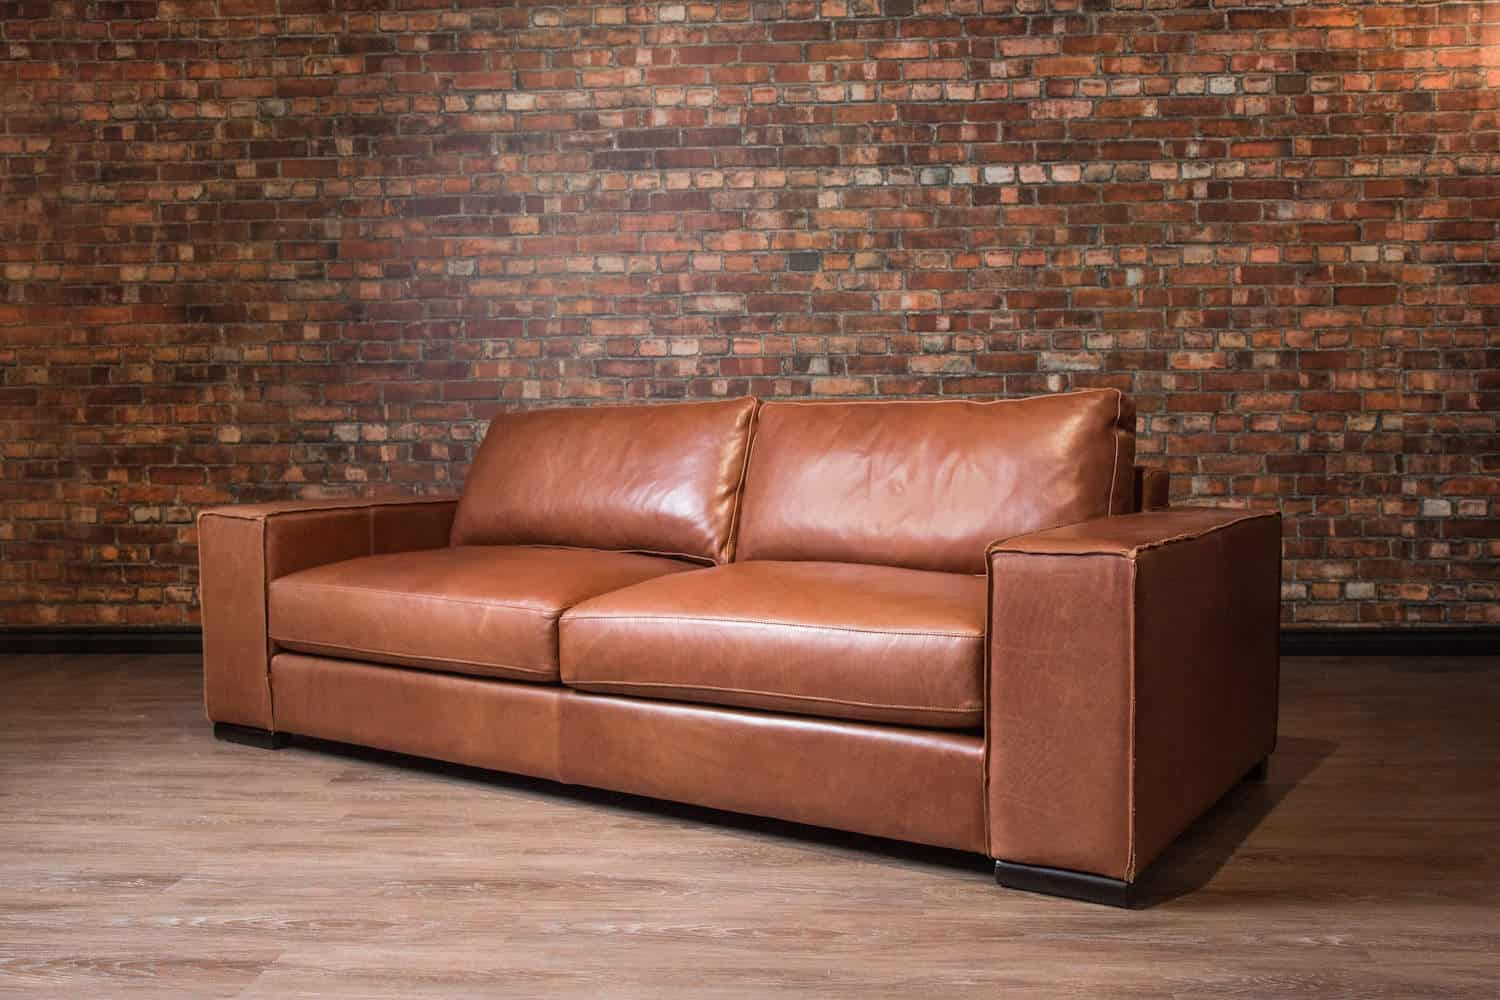 The Iroquois Leather Sofa Canada S Boss Leather Sofas